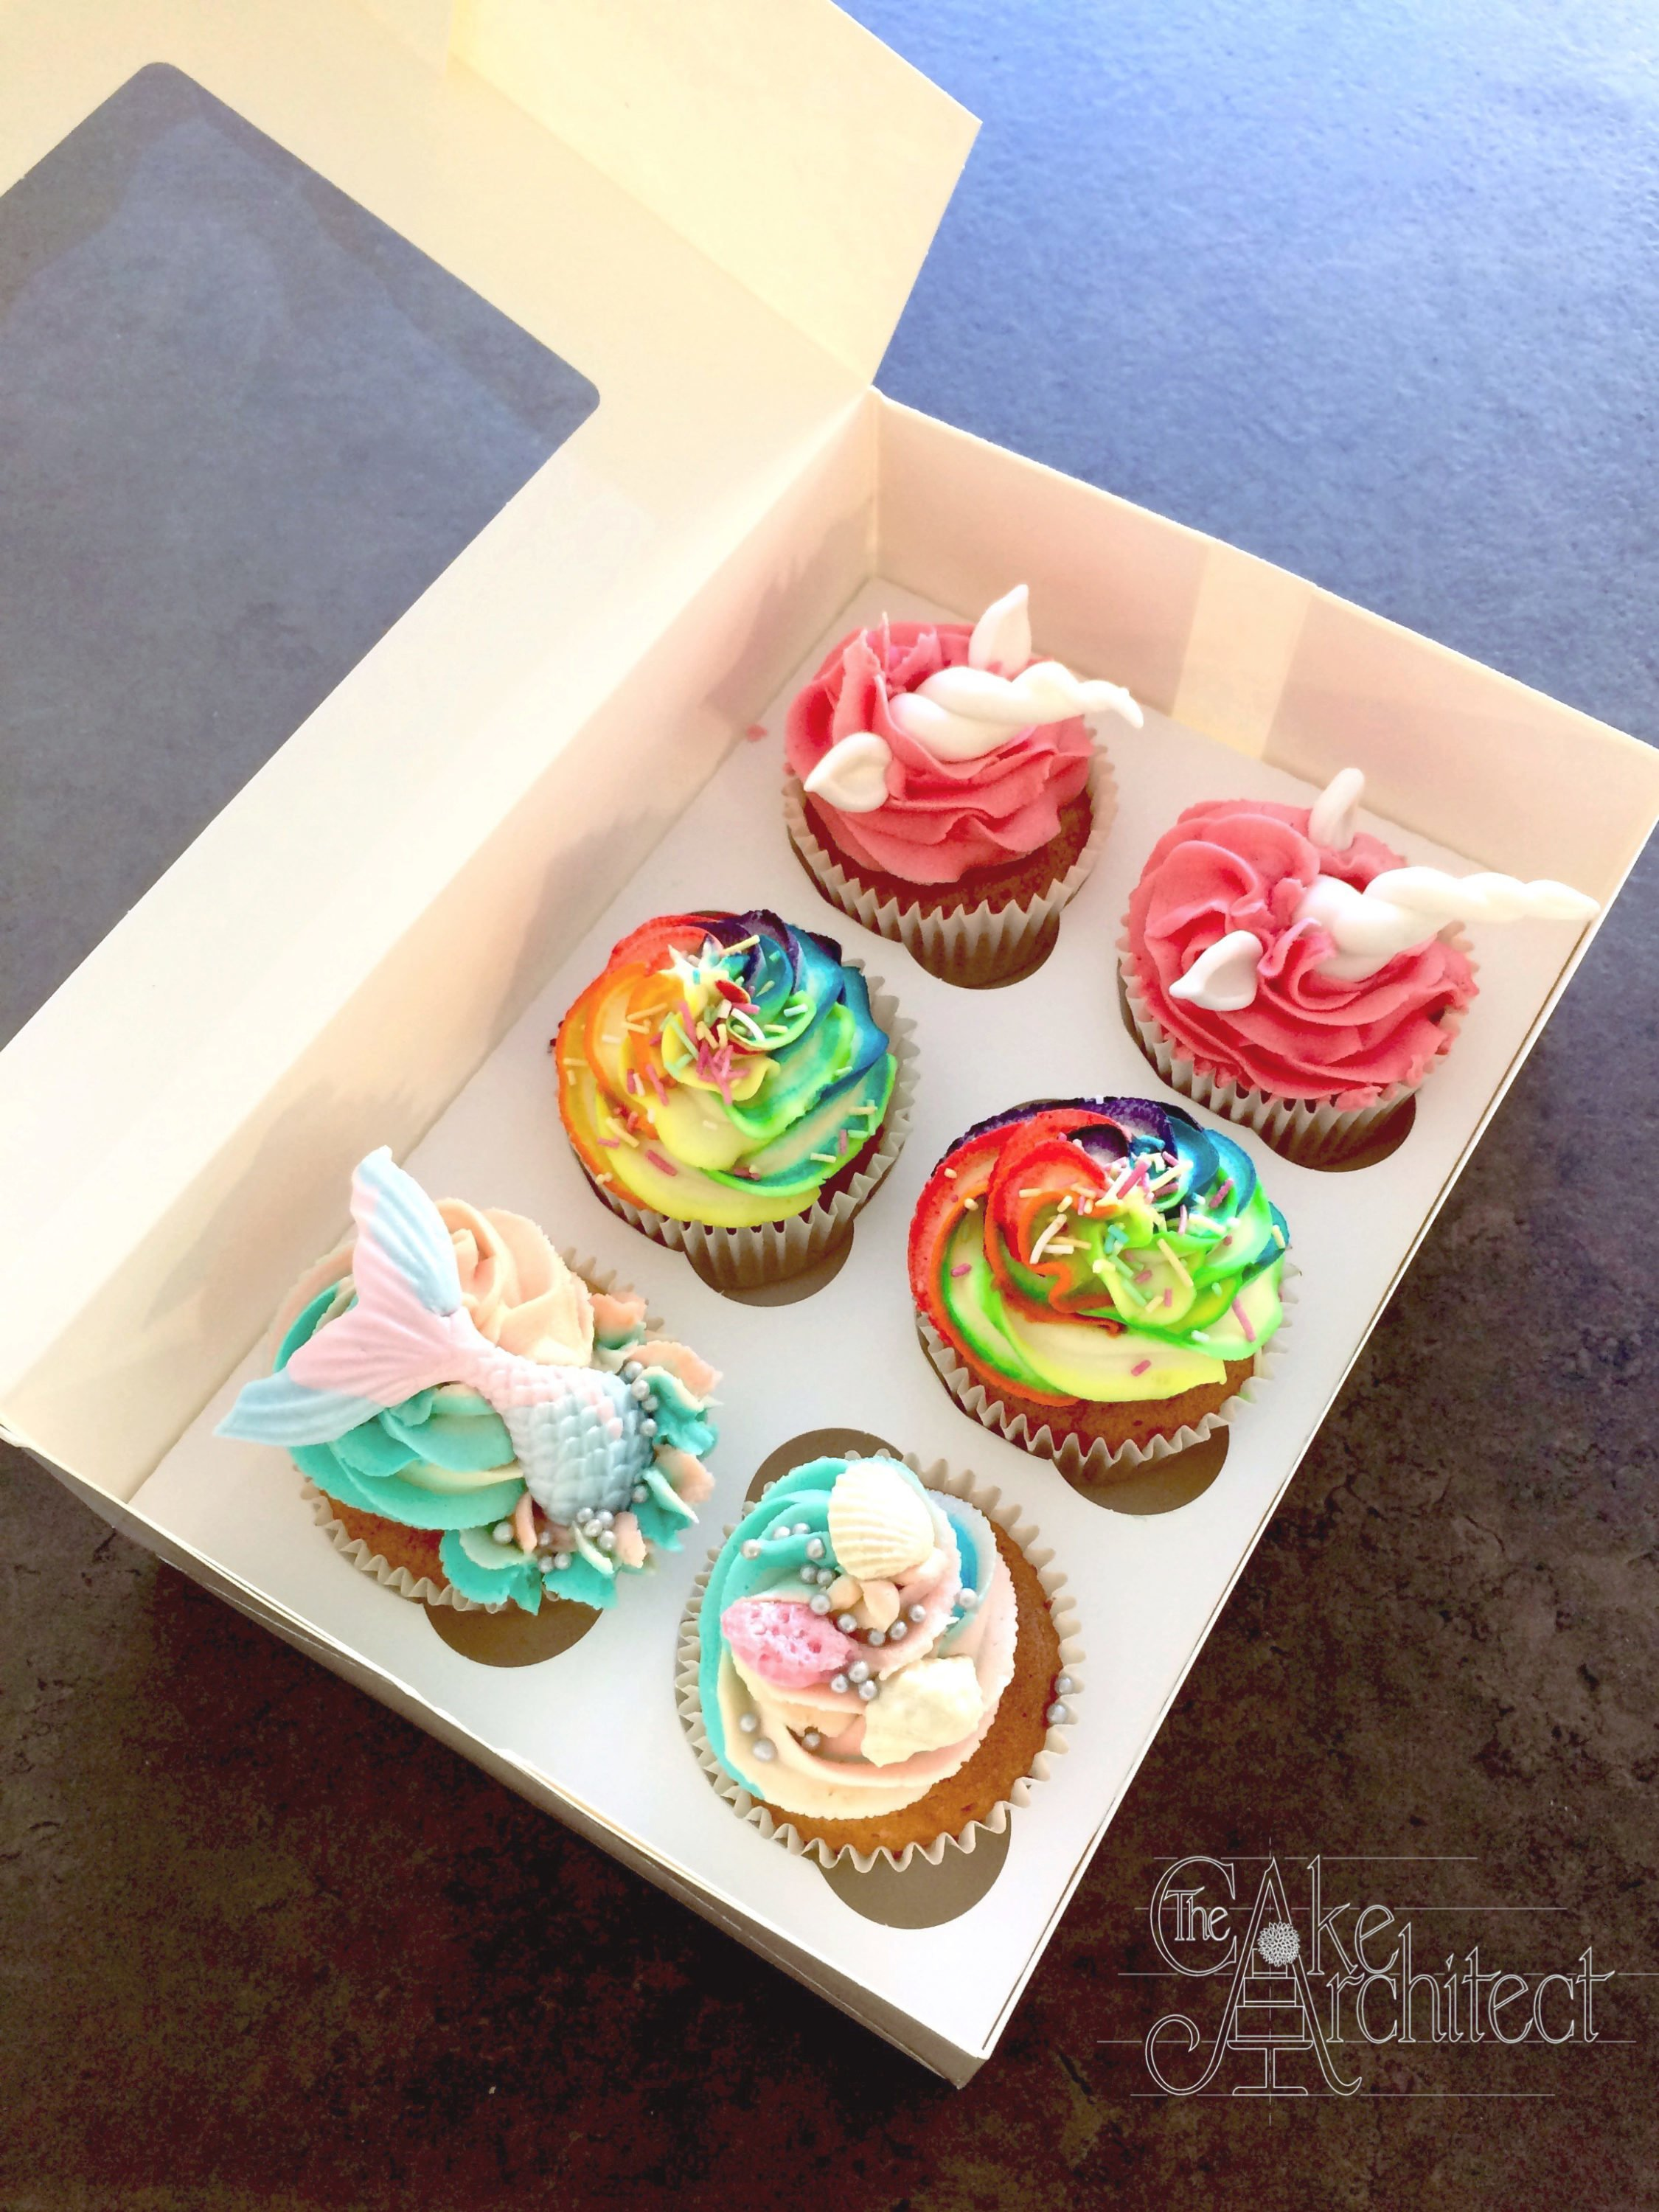 Cupcakes Colourful with Mermaid and Unicorn details